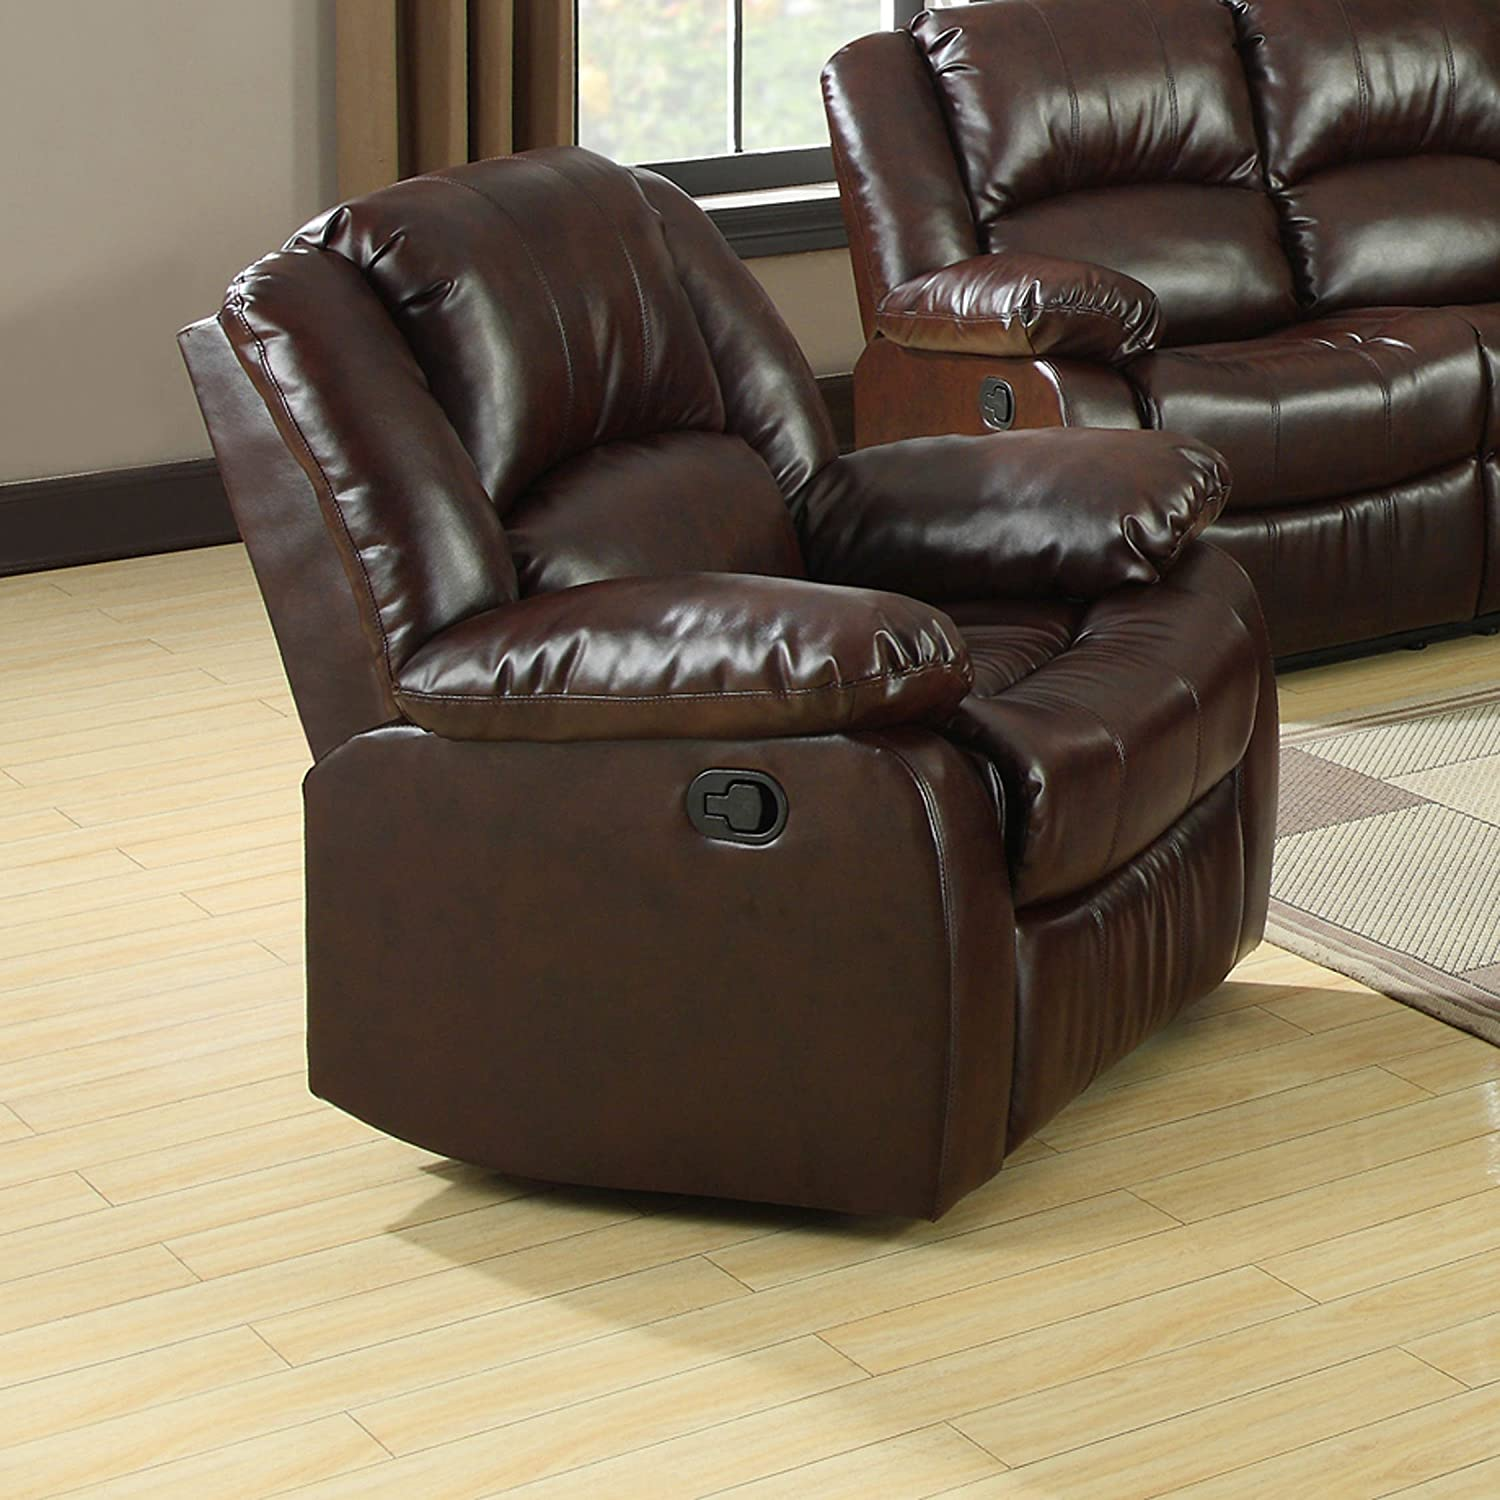 Furniture of America Poulanc 3-Piece Bonded Leather Match Recliners Set, Brown